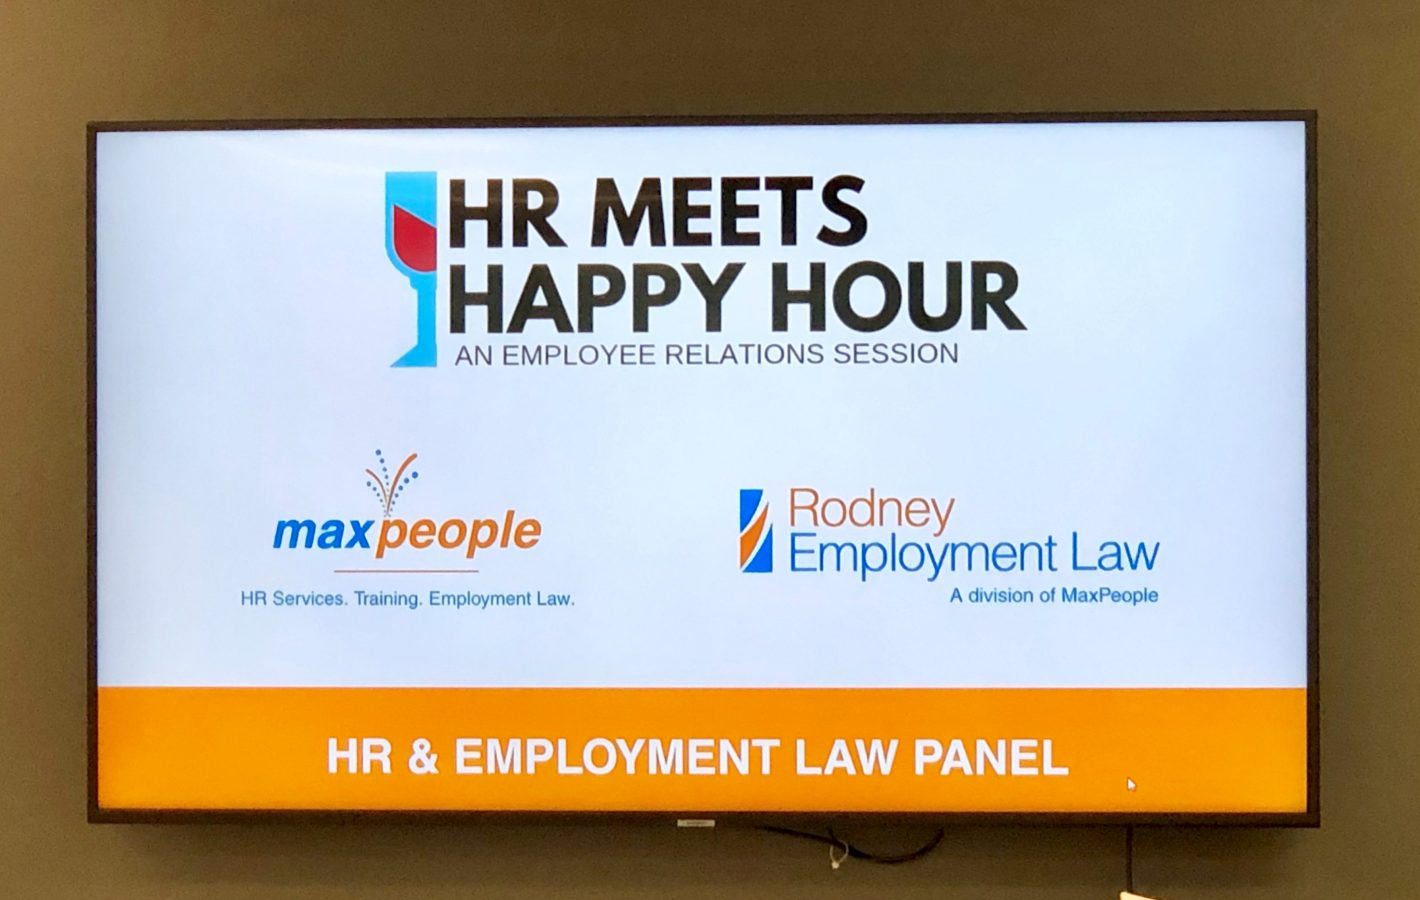 TV showing the HR meets happy hour logo